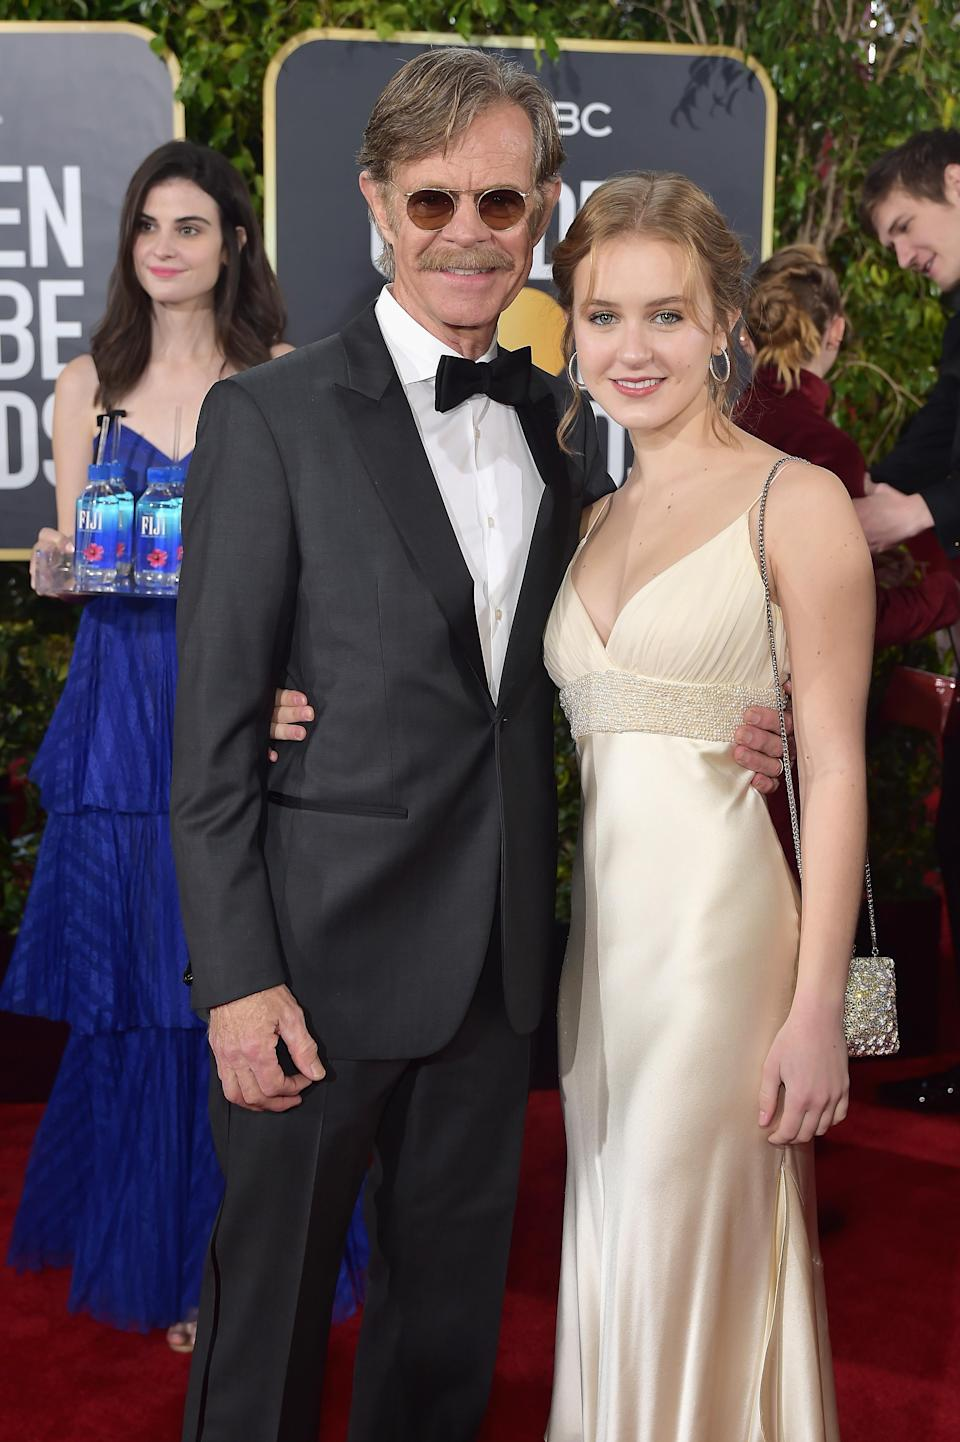 William H. Macy and Sophia Macy at the 2019 Golden Globes. (Photo: Getty Images)